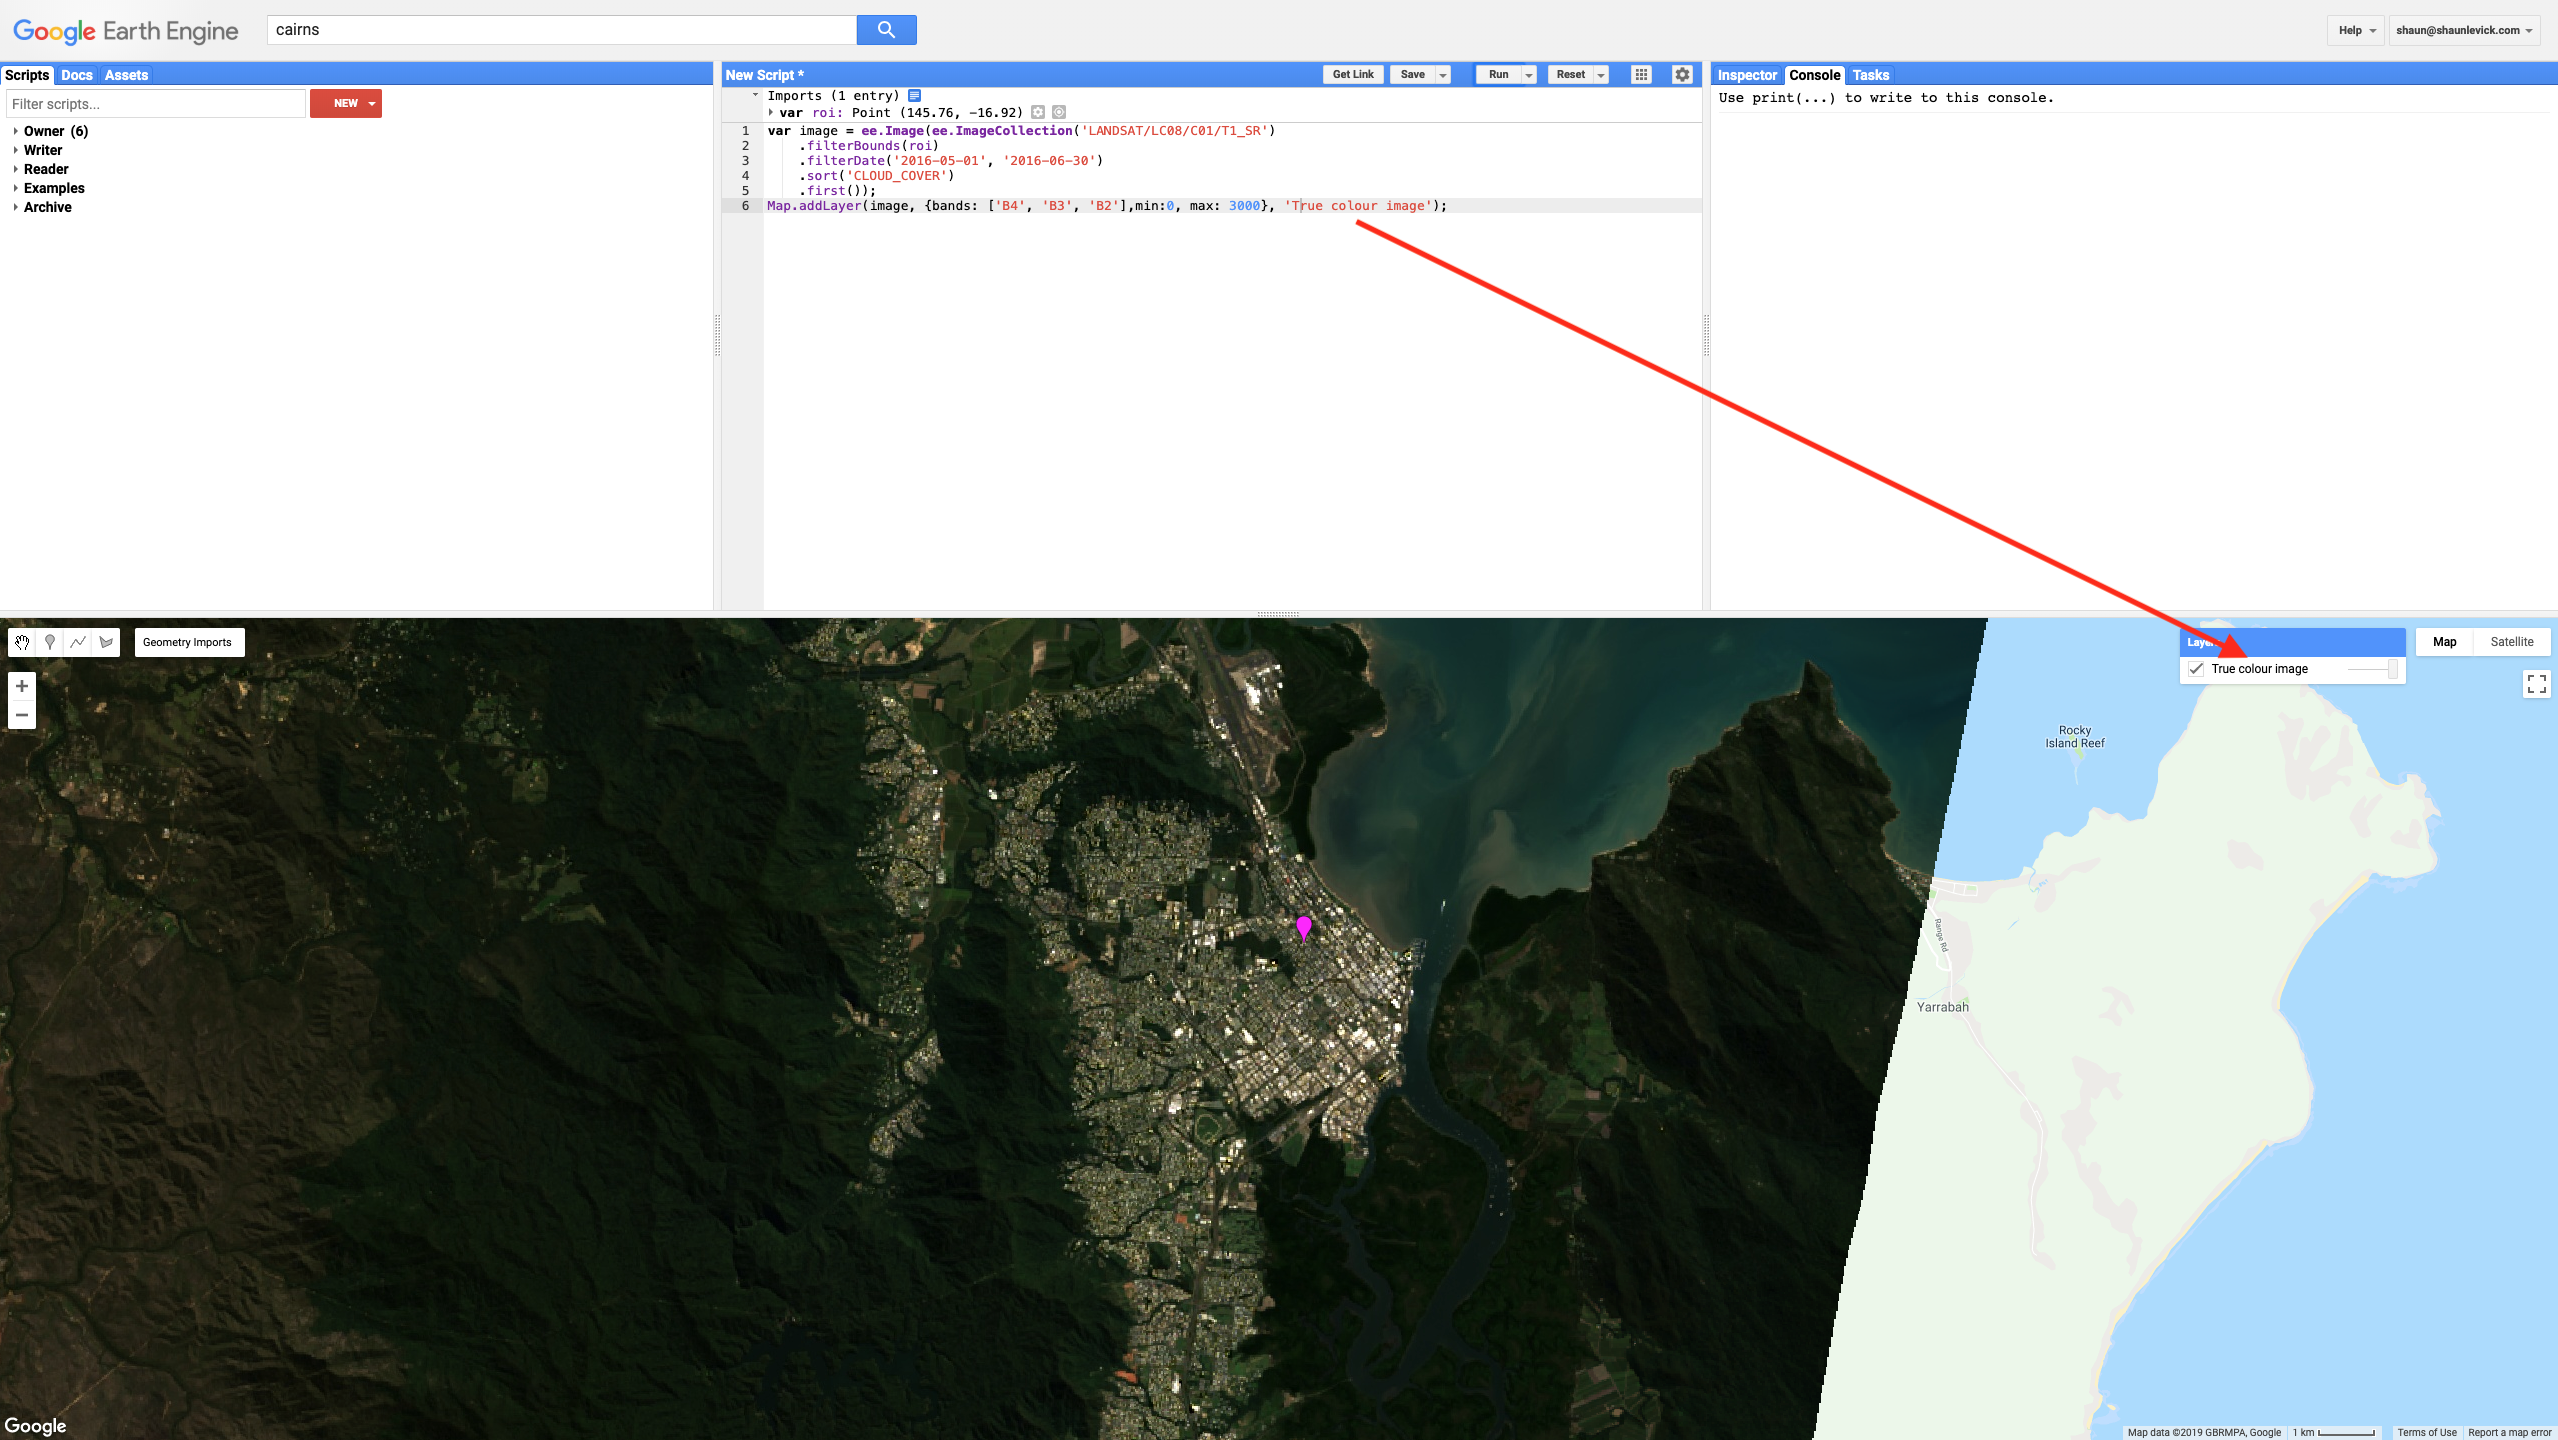 Figure 2. Adding image to map view